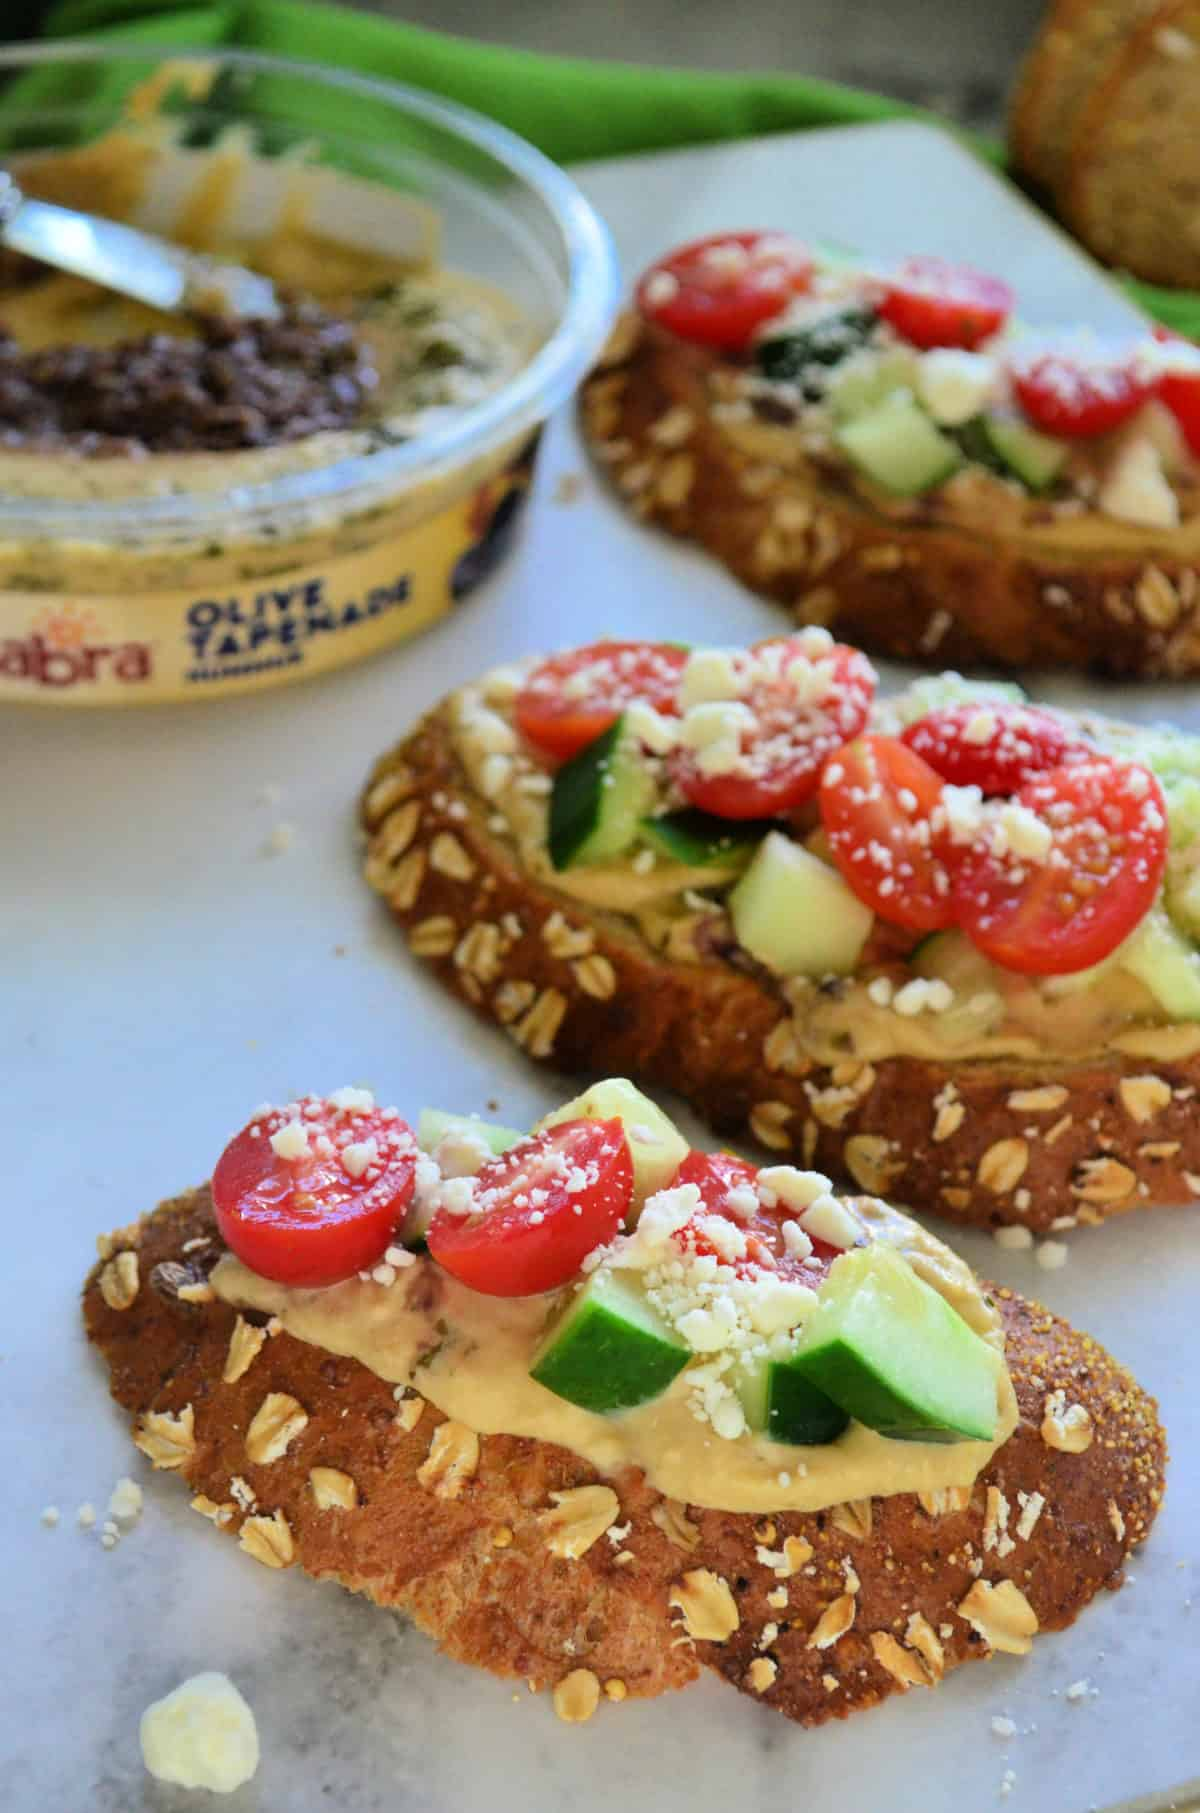 3 toast slices topped with hummus, cucumber, tomato, and feta with sabra hummus blurred behind.